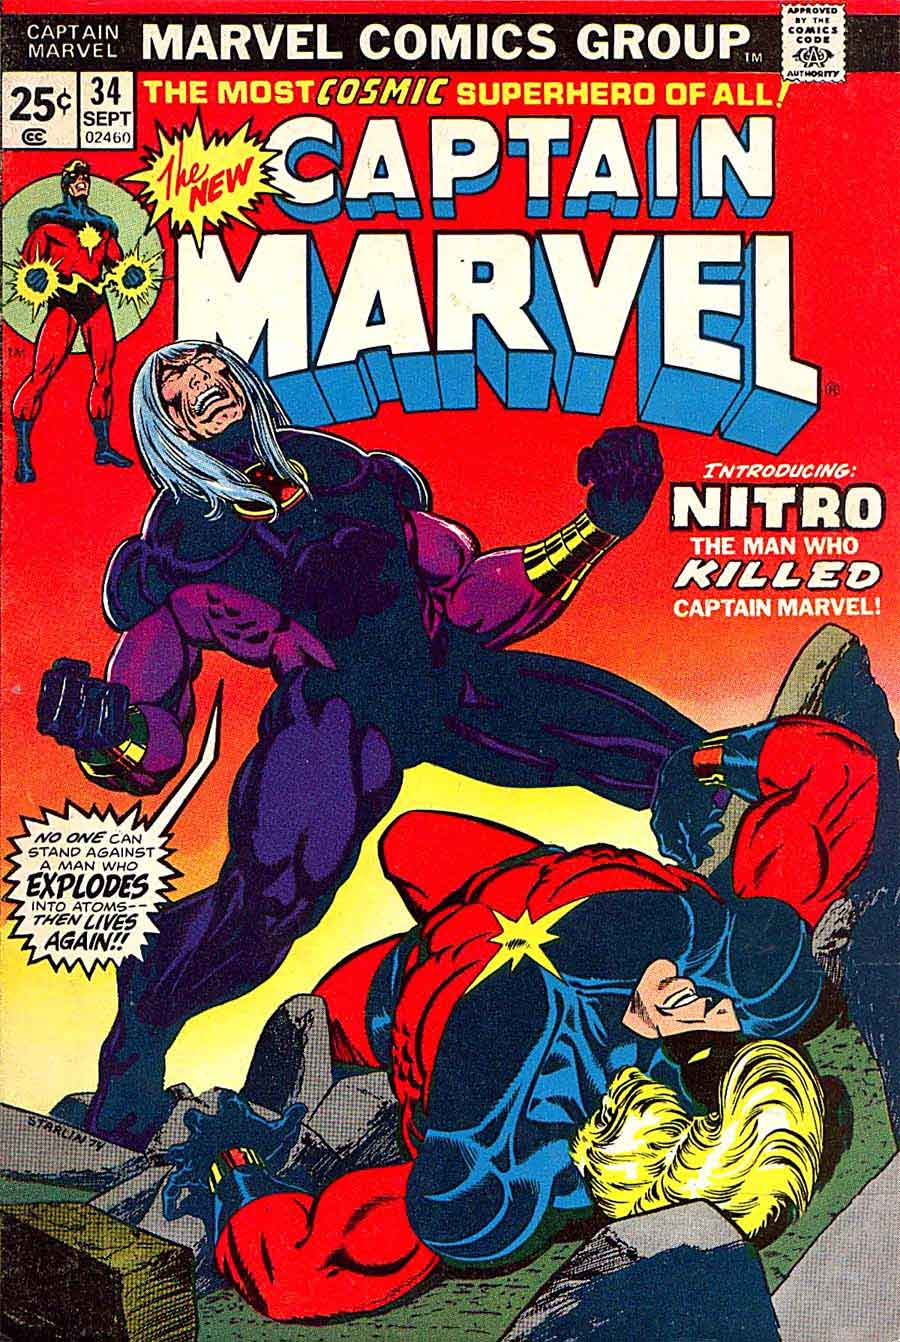 Captain Marvel #34 marvel 1970s bronze age comic book cover art by Jim Starlin